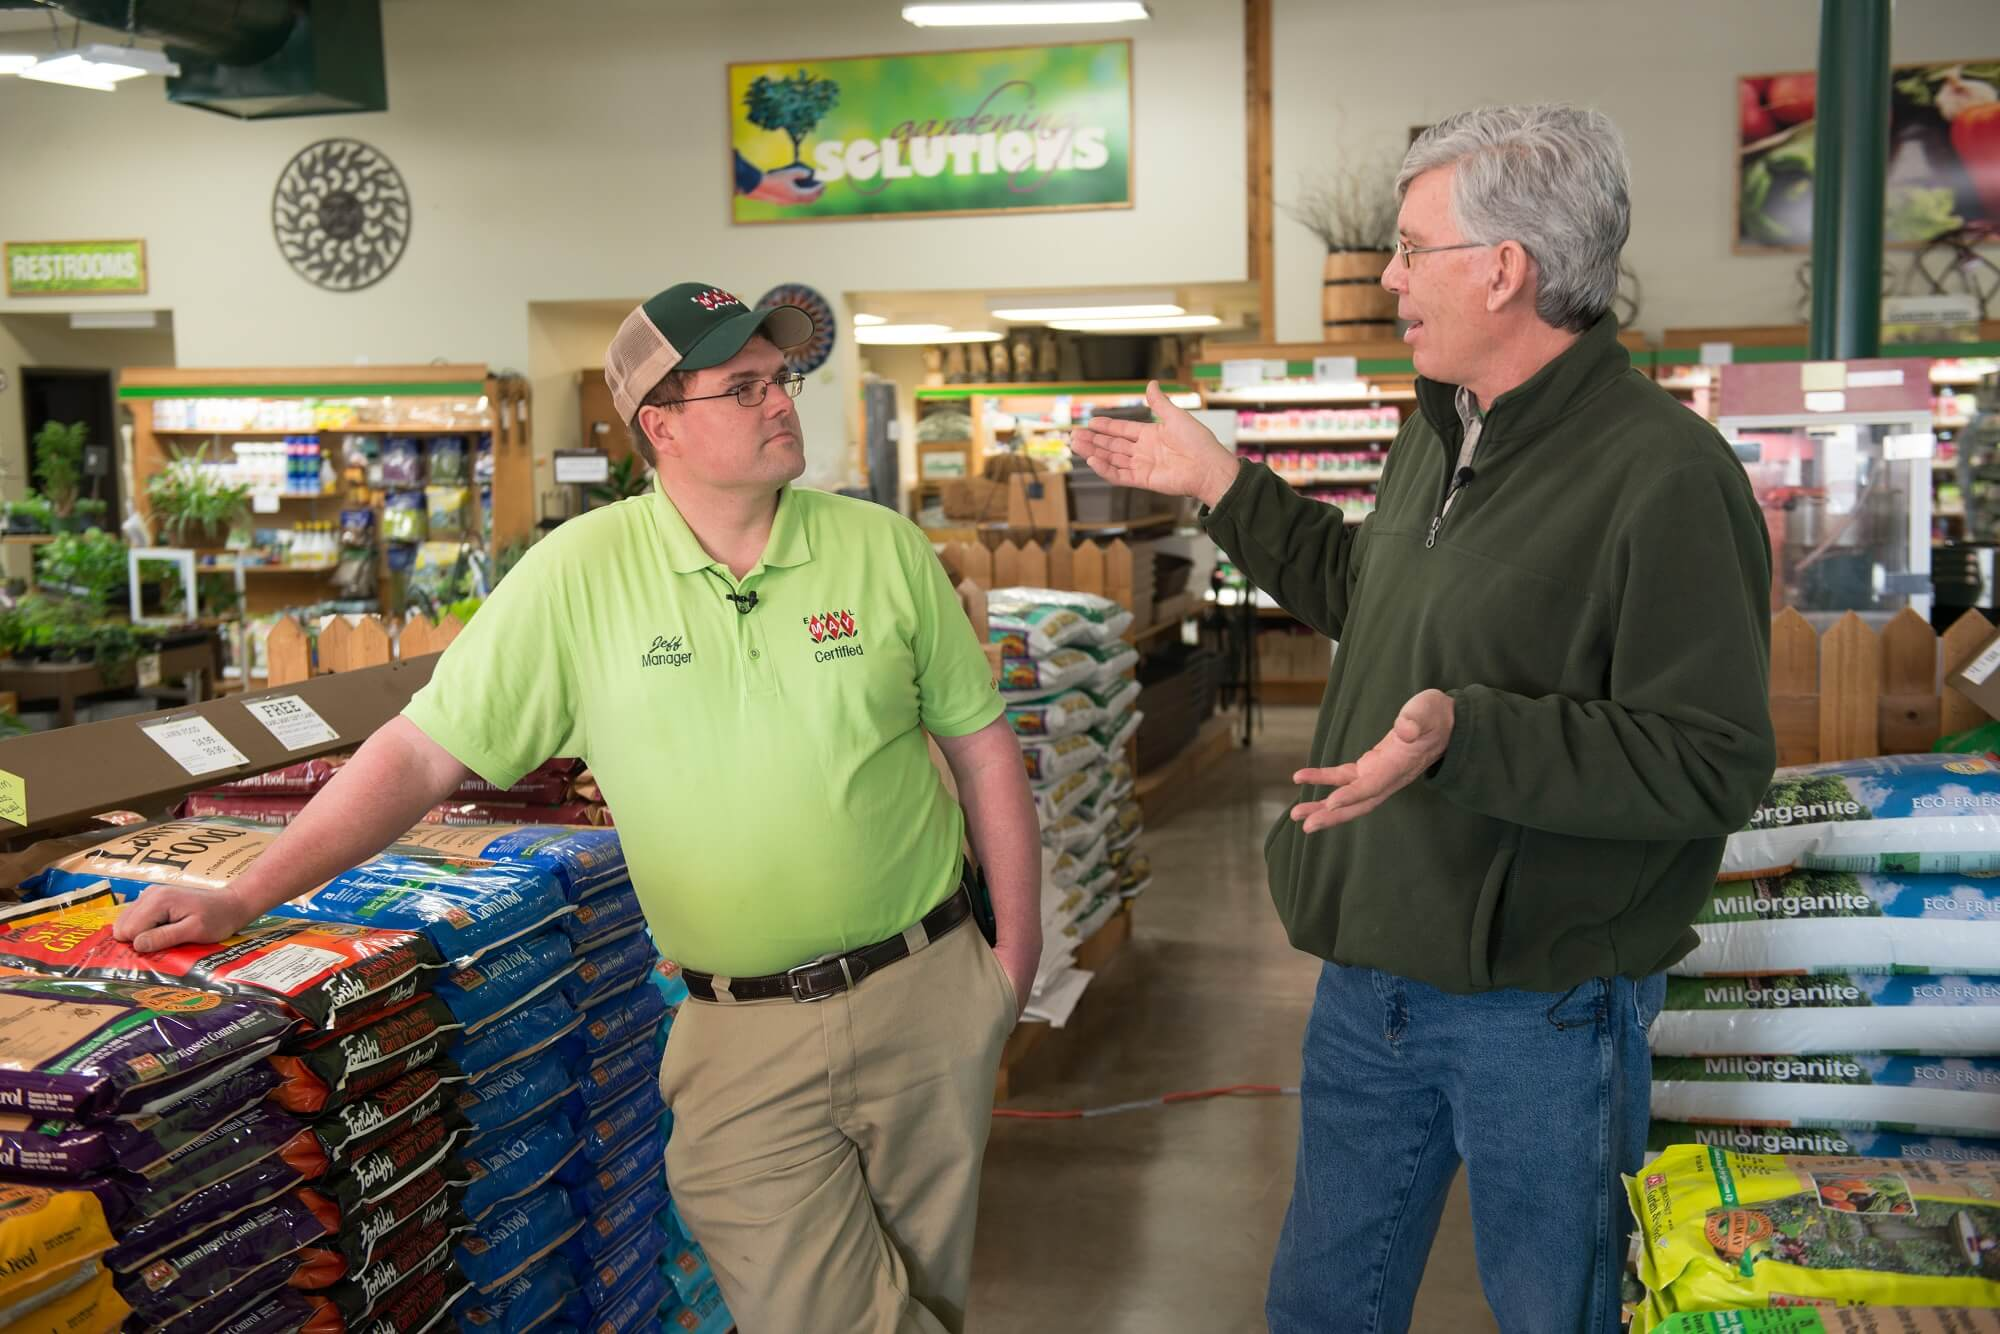 Jeff Lanphier of Earl May Nursery & Garden Center  discusses gardening with Mark Jackson.